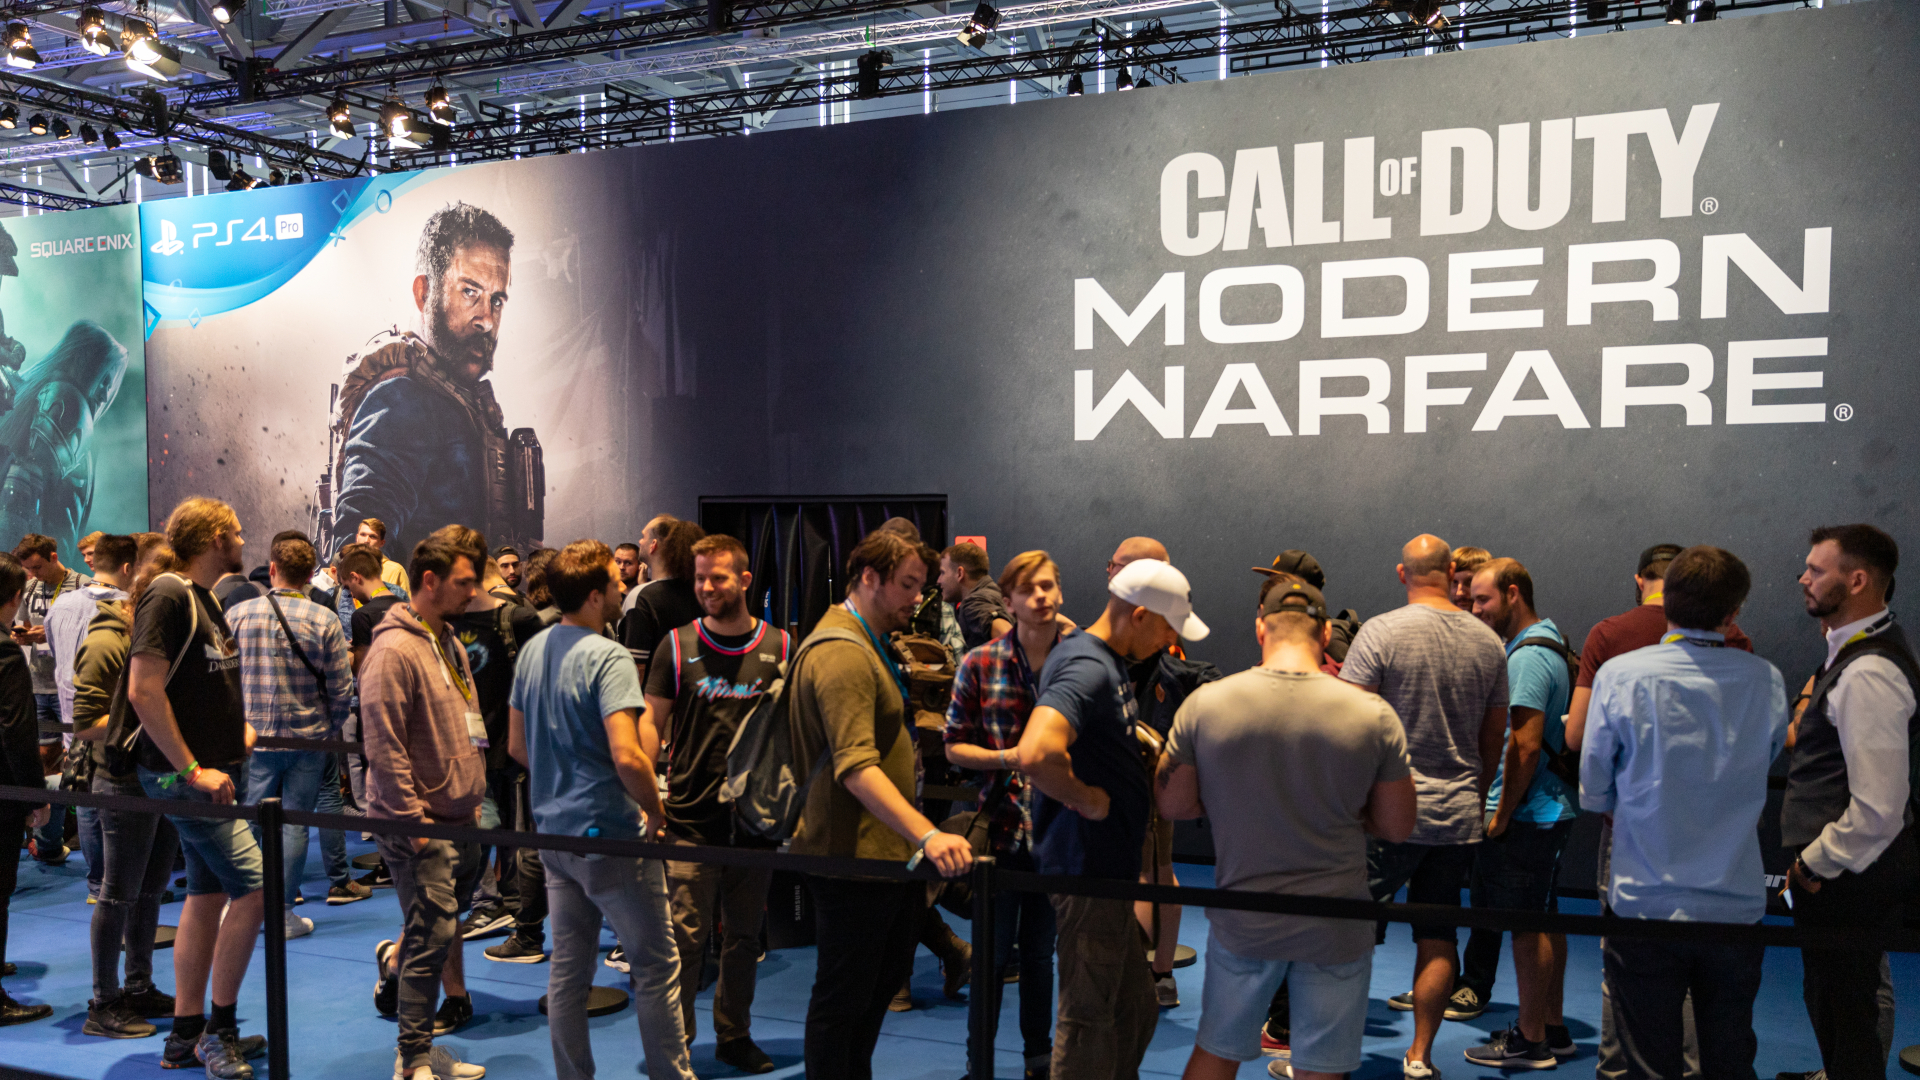 'Call of Duty' stands with Black Lives Matter: Infinity Ward details plan to fight racism on 'Modern Warfare'